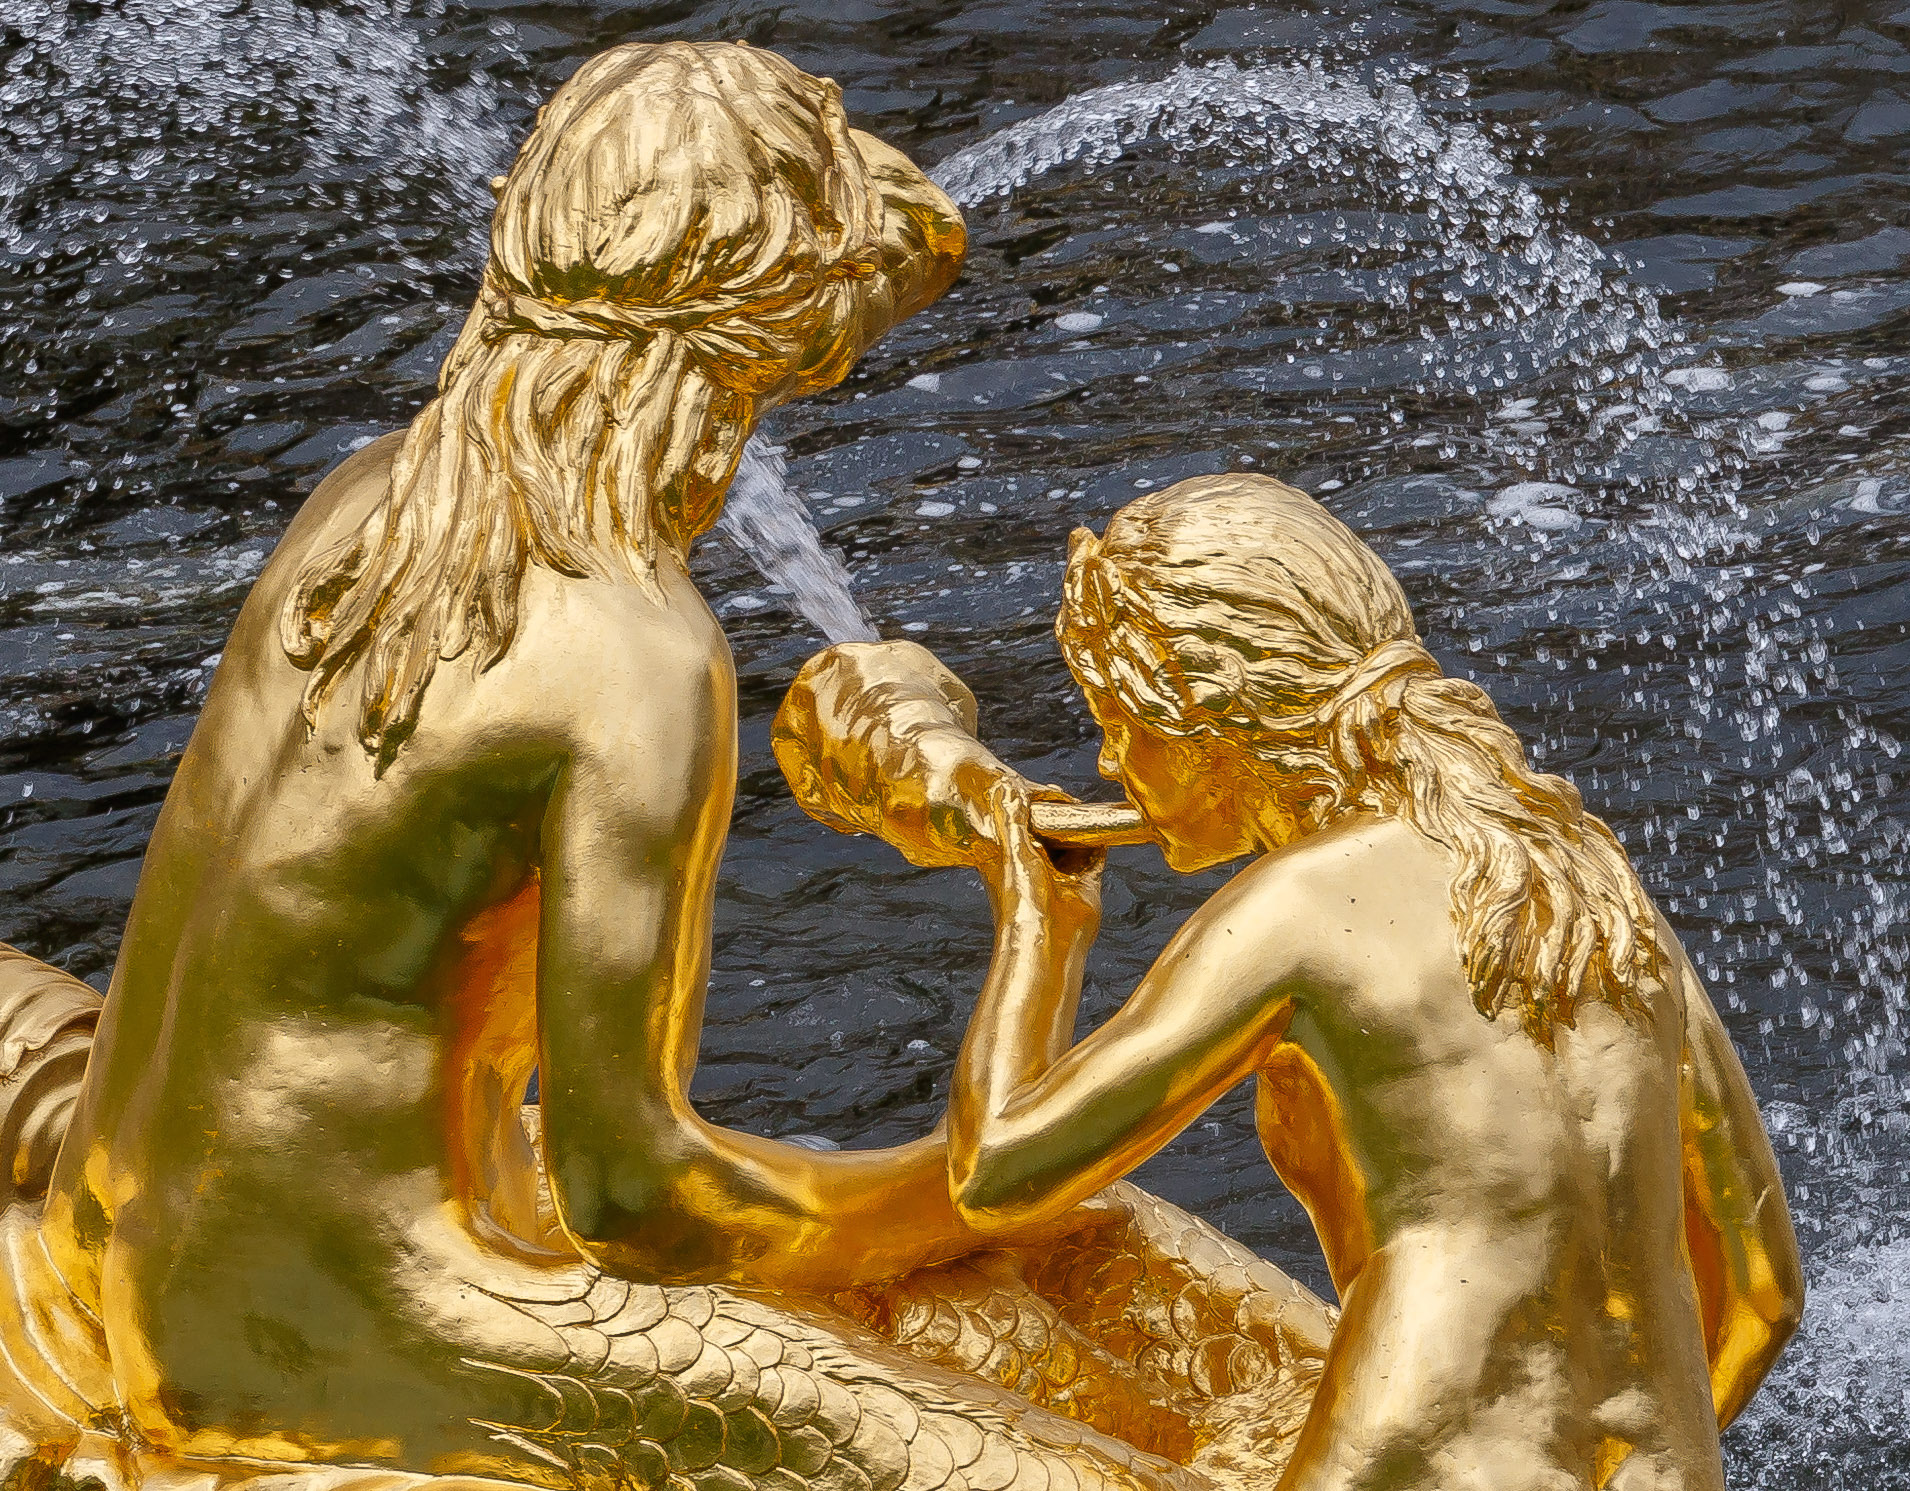 gold statue, statue, fountain, statue spraying water, water nymphs